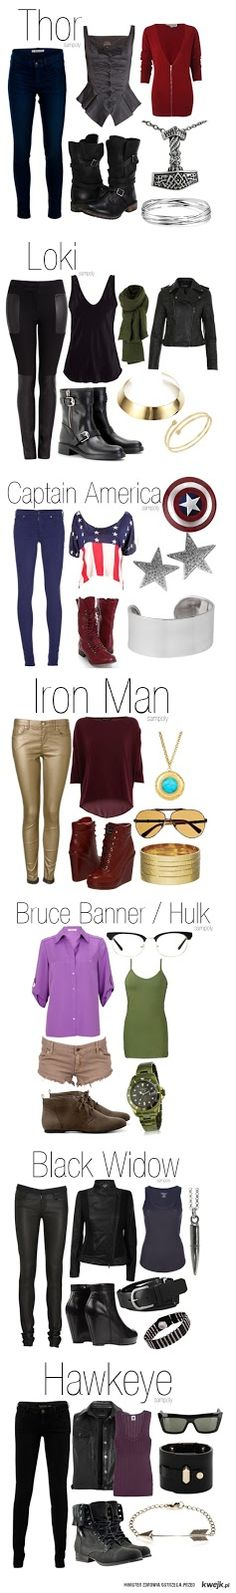 these are all so cool! even though I am totally a Thor girl, I love Loki's and Iron Man's.